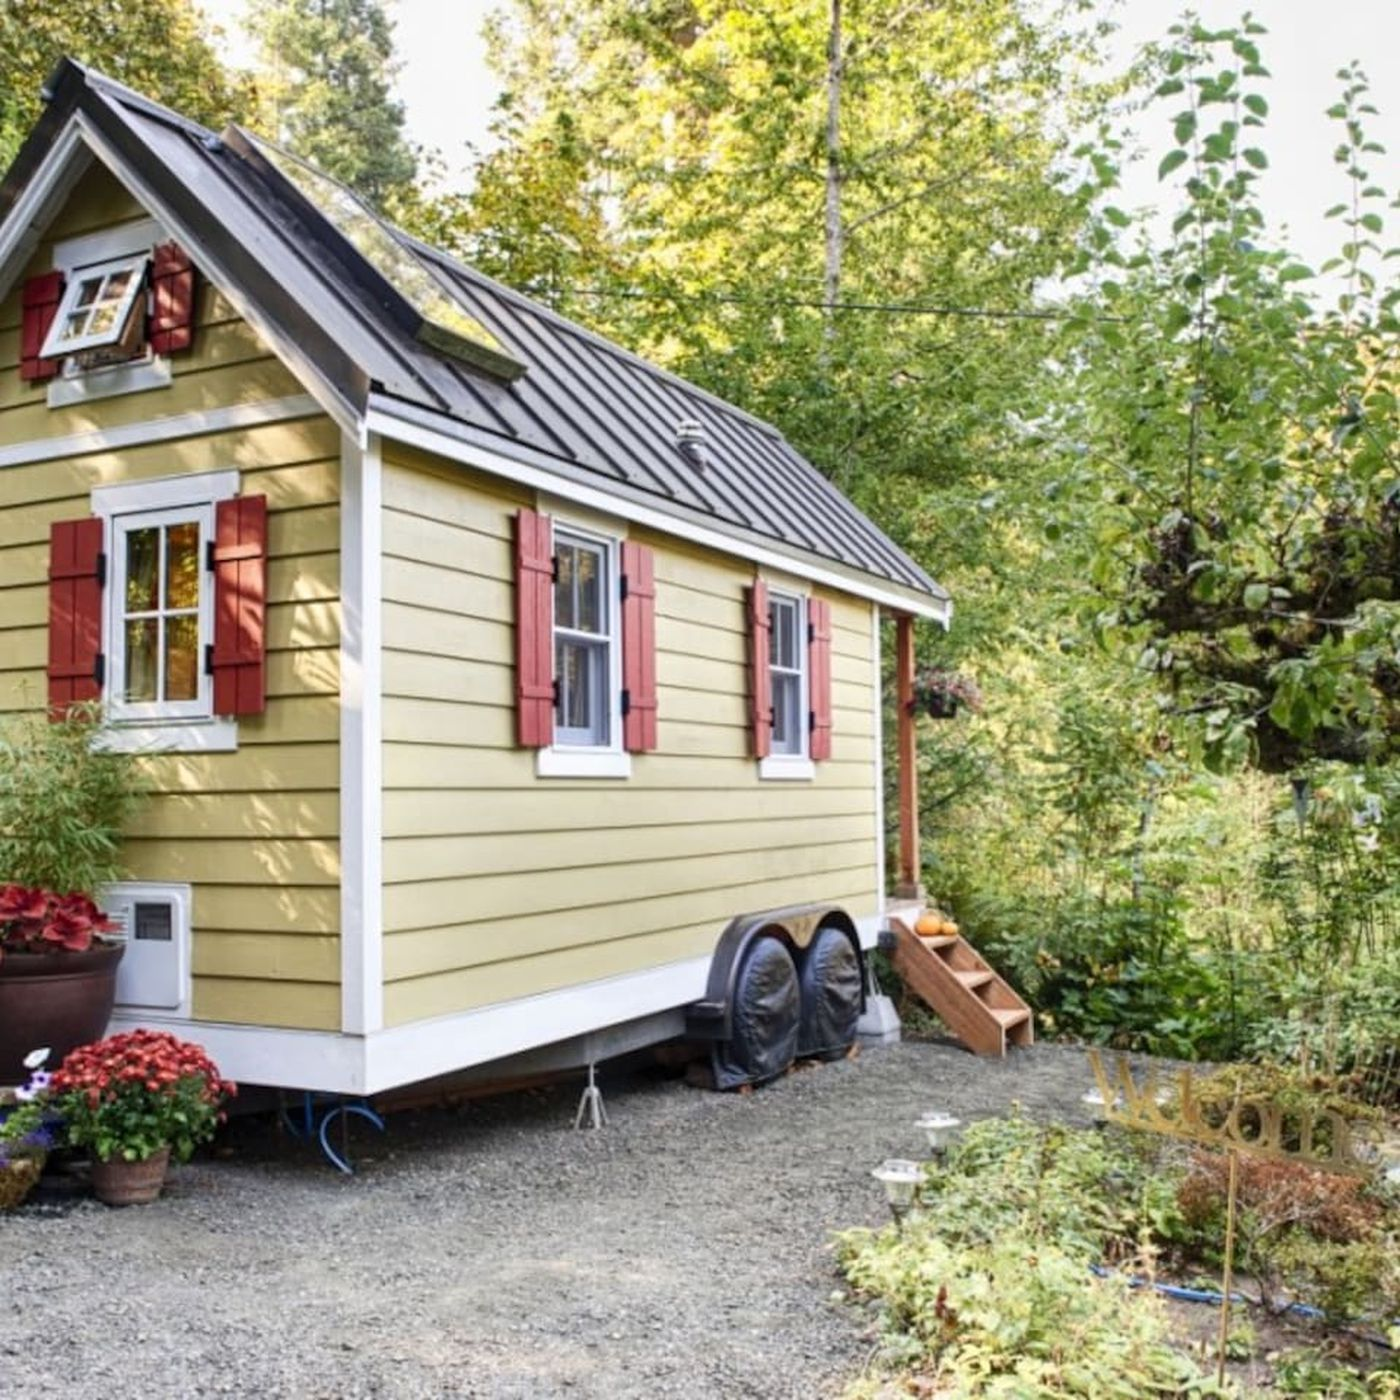 Seattle S Coolest Short Term Tiny House Rentals Curbed Seattle,Bathroom Under Sink Storage Cabinet